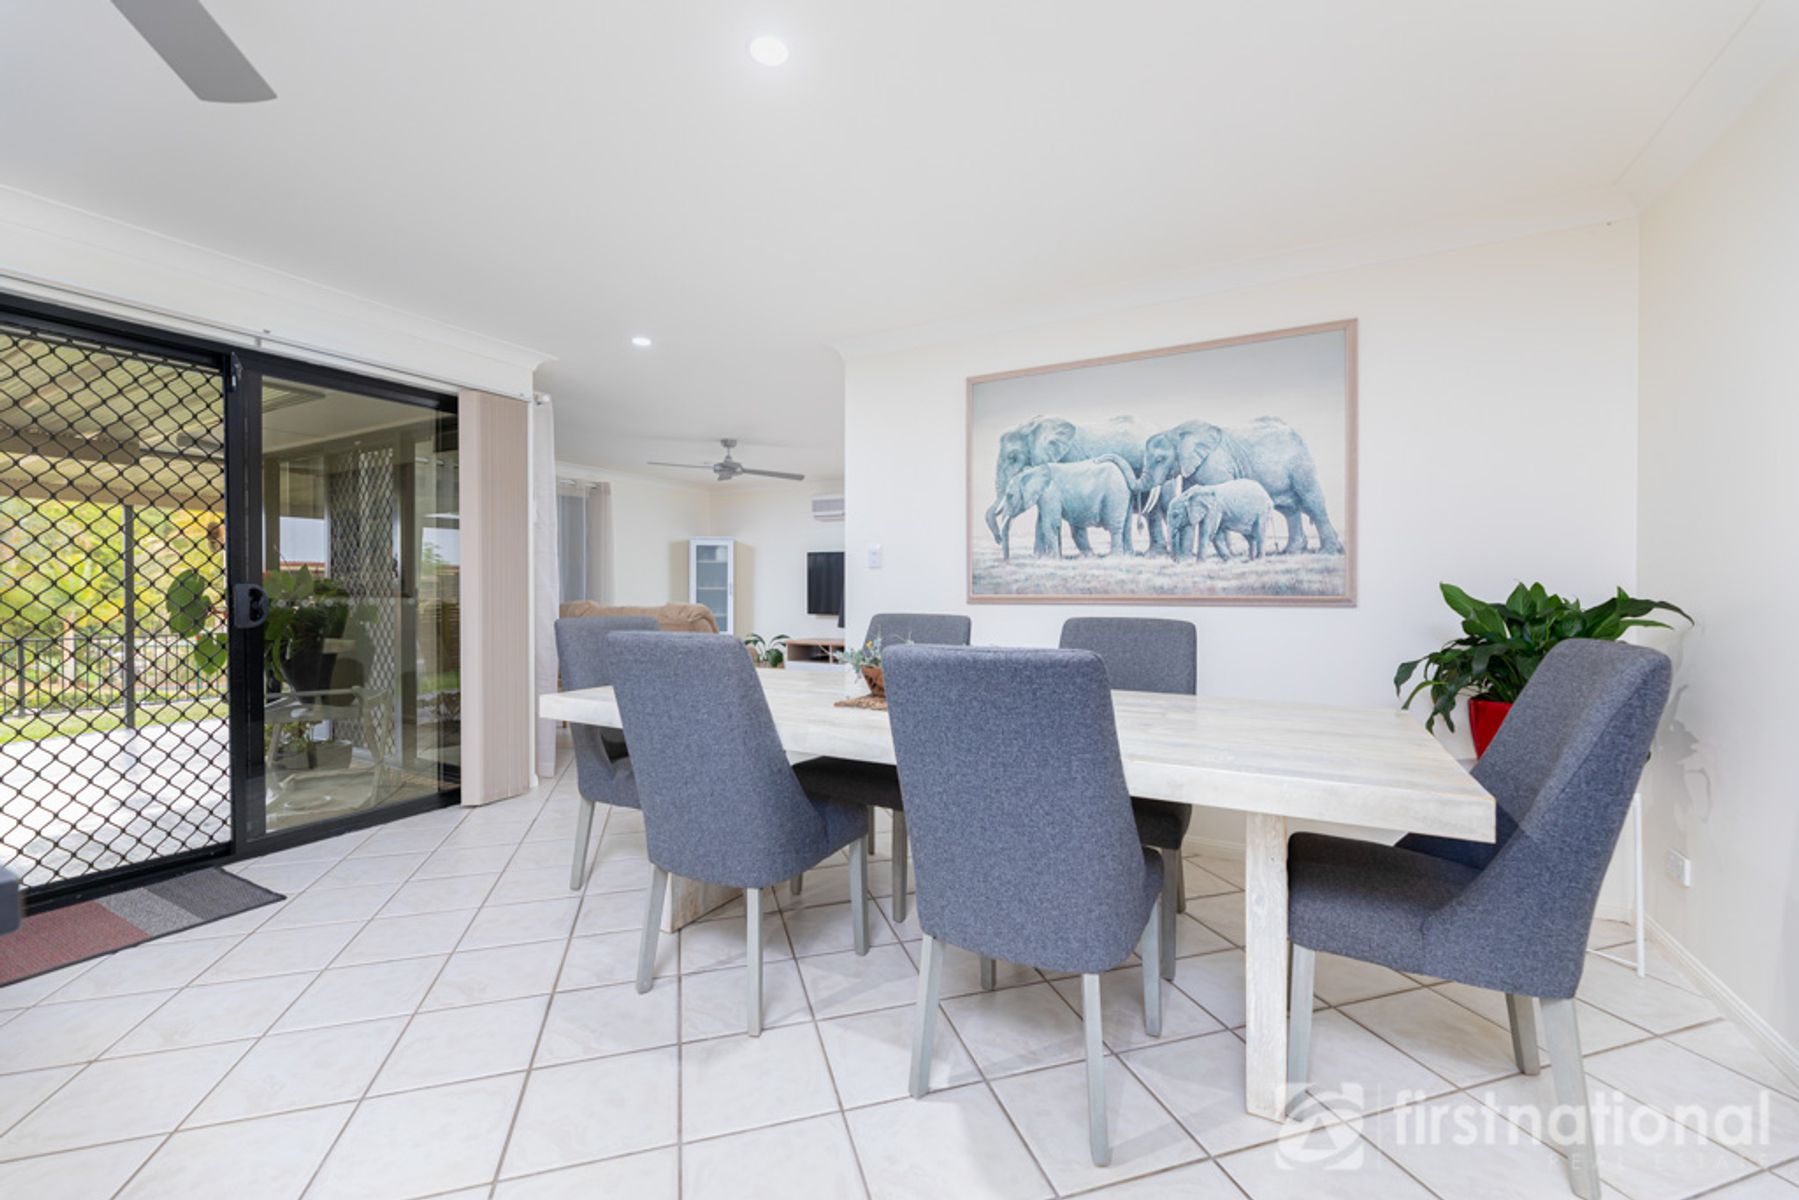 18 Mittelstadt Road, Glass House Mountains, QLD 4518